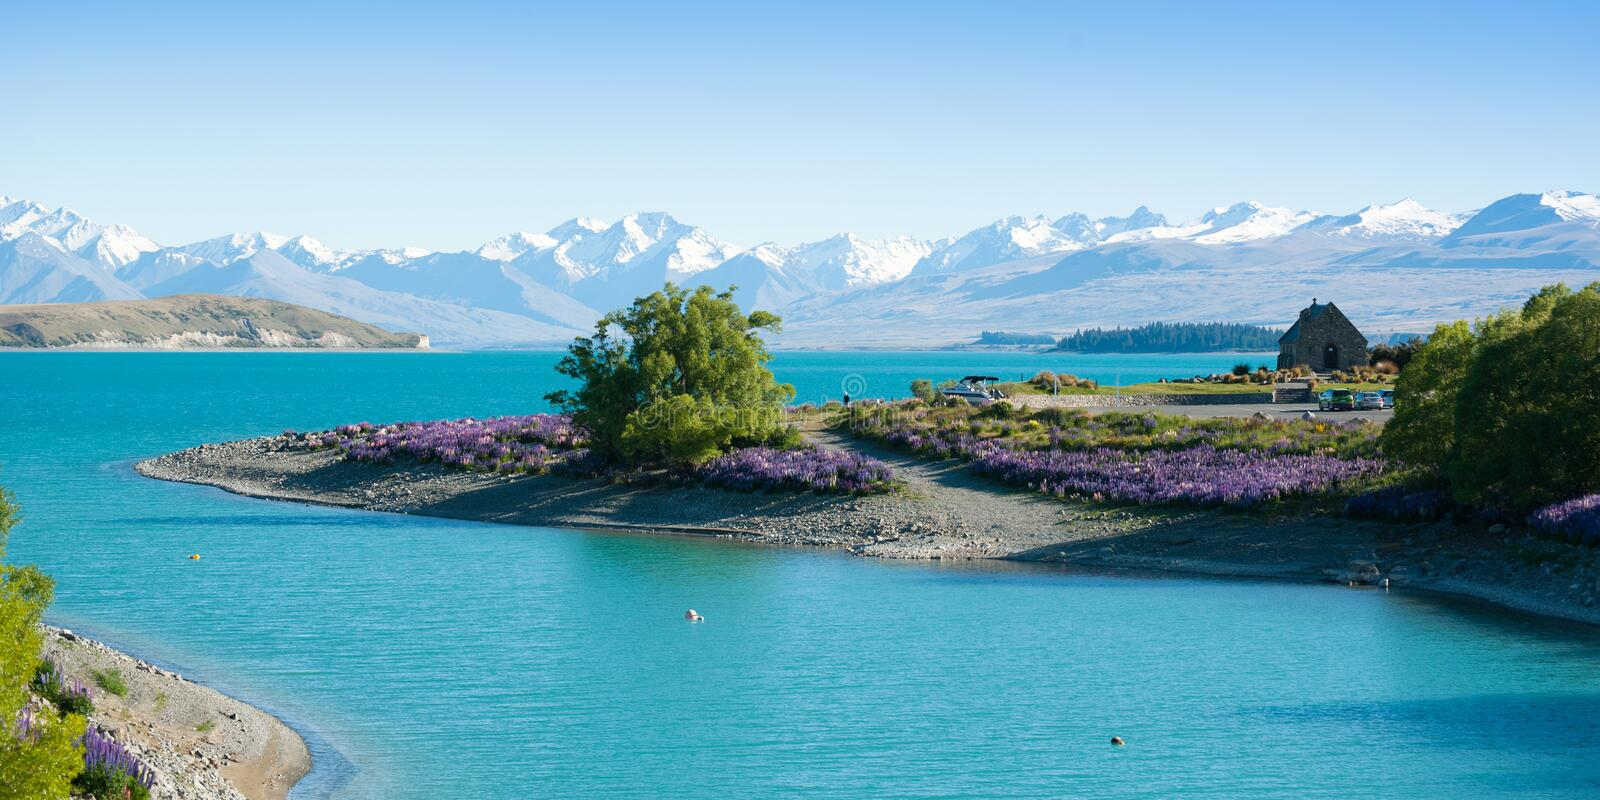 Beautiful landscape of garden, lake and snow mountain at Lake Tekapo, South Island, New Zealand. Beautiful landscape of flower garden, tree, lake and snow